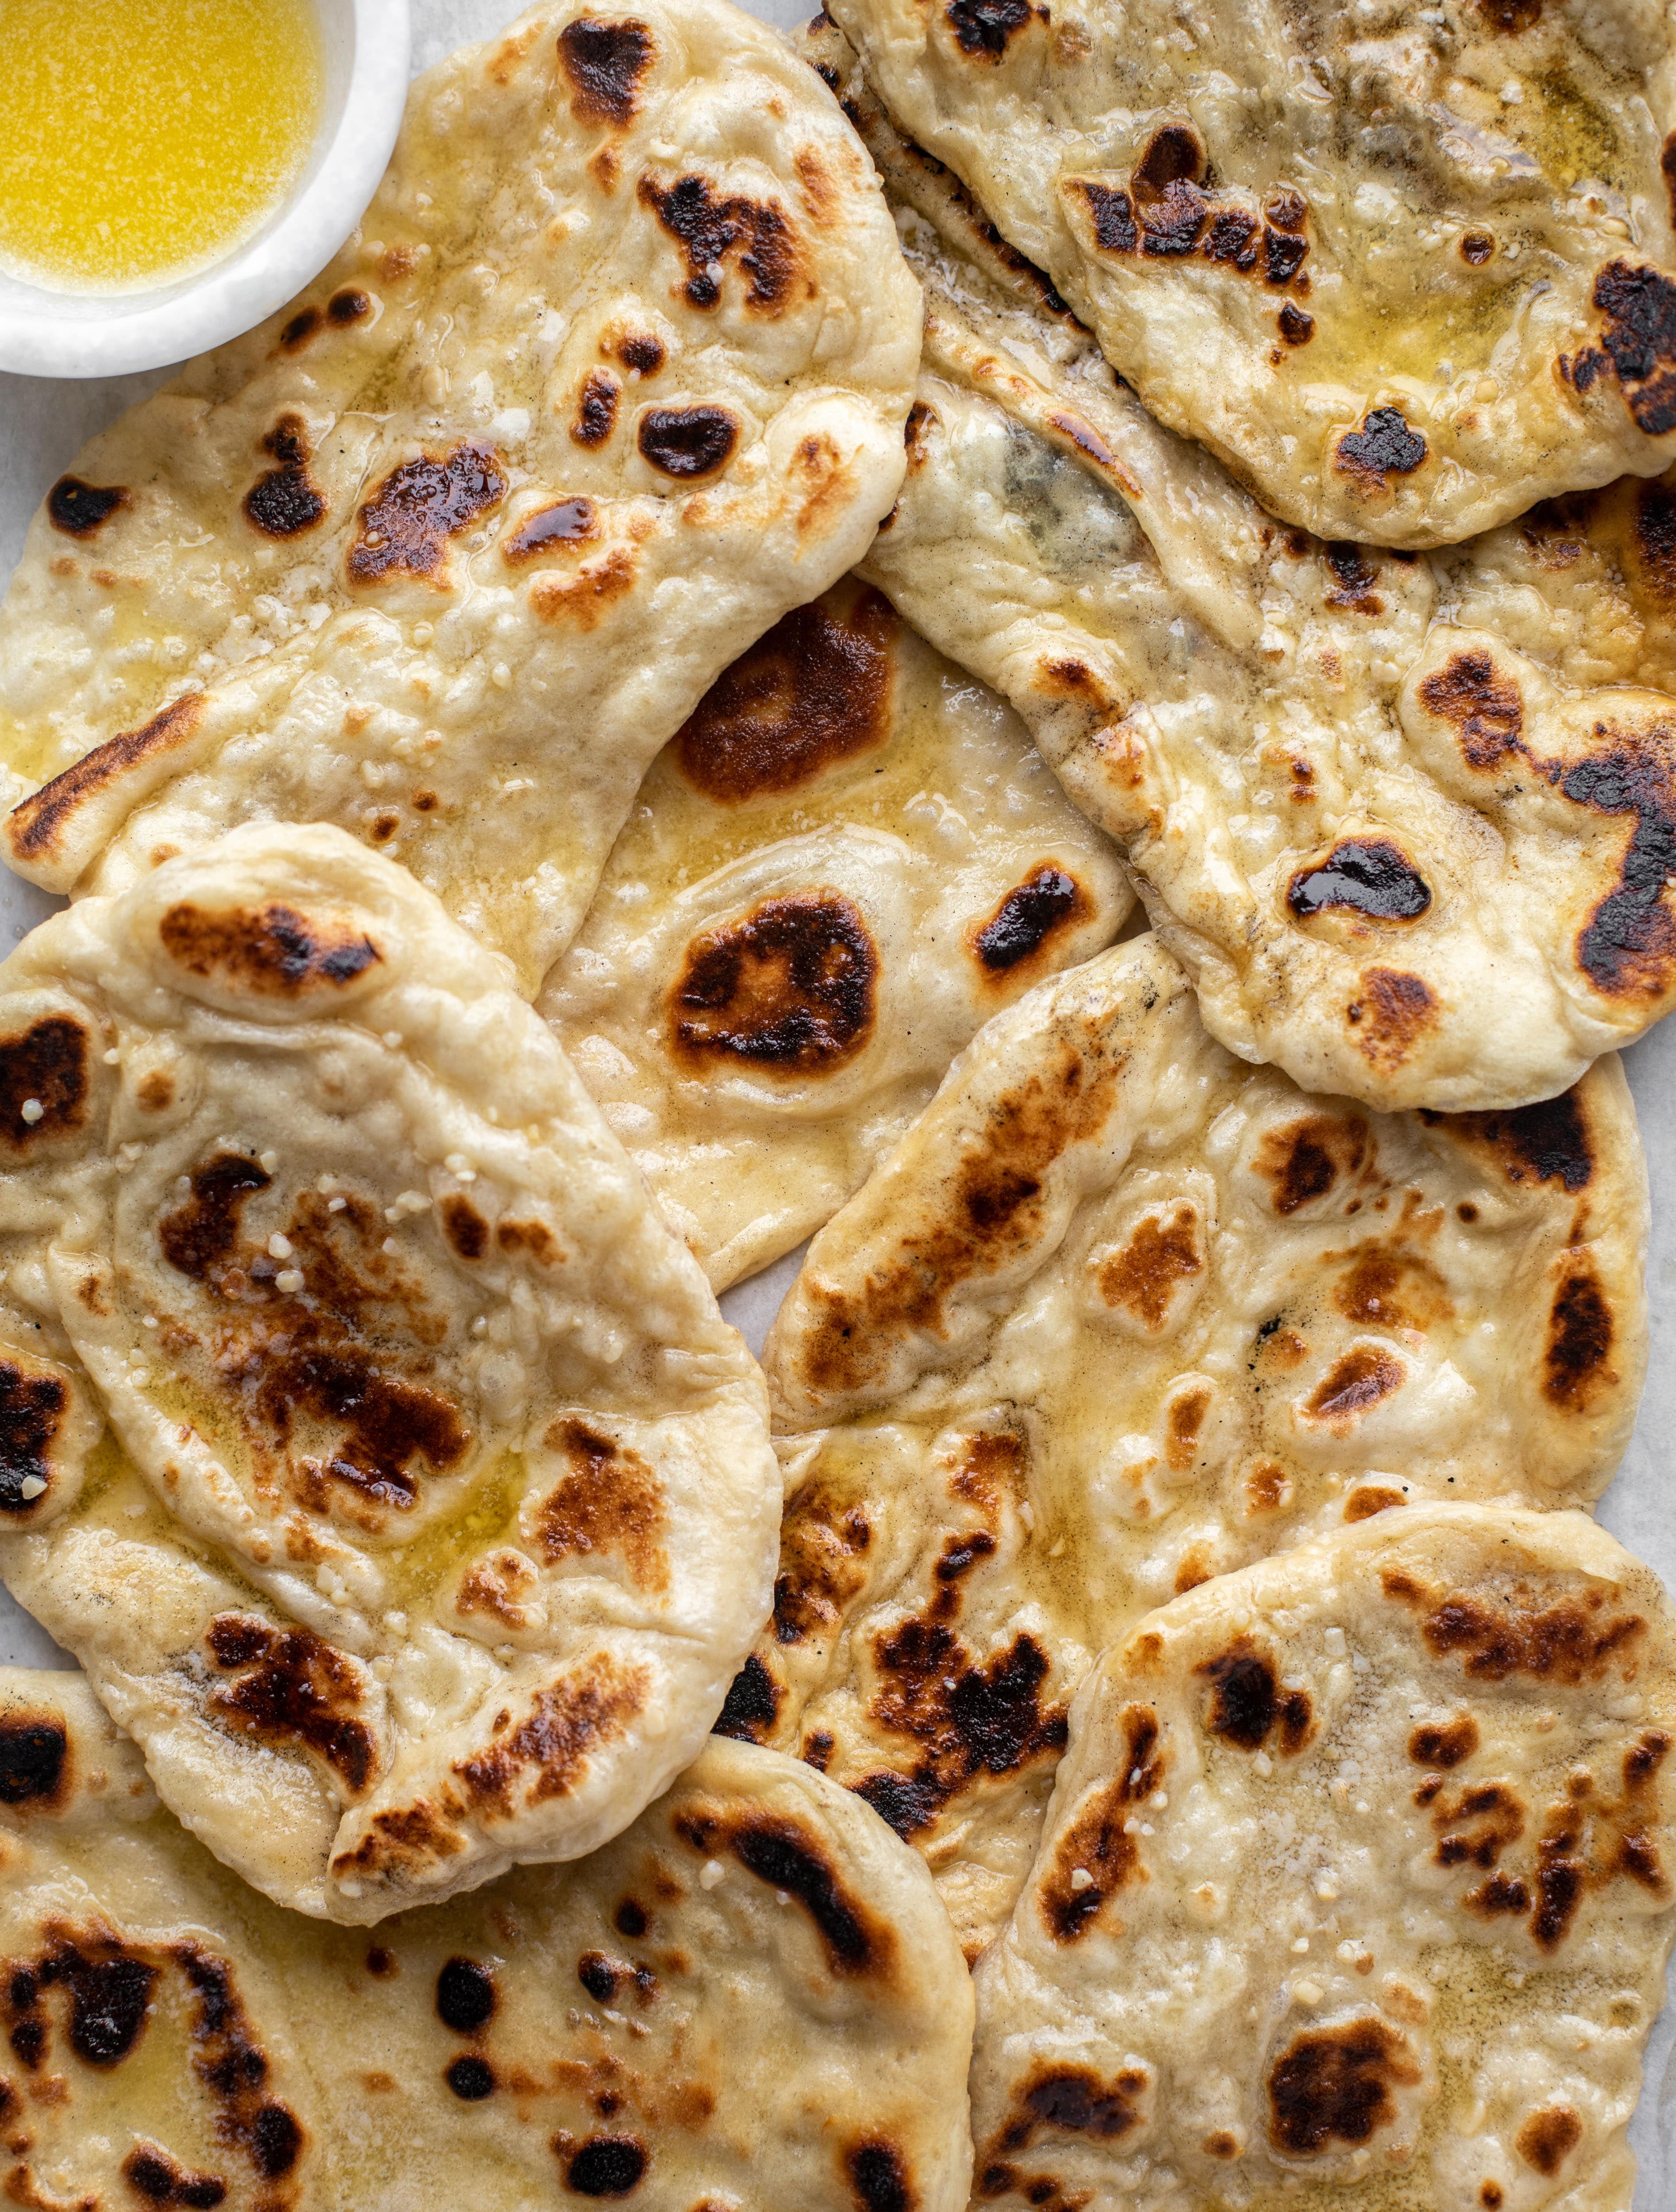 This garlic butter naan bread recipe is divine! It uses baking powder and baking soda instead of yeast and is drenched with garlic butter. So delicious!